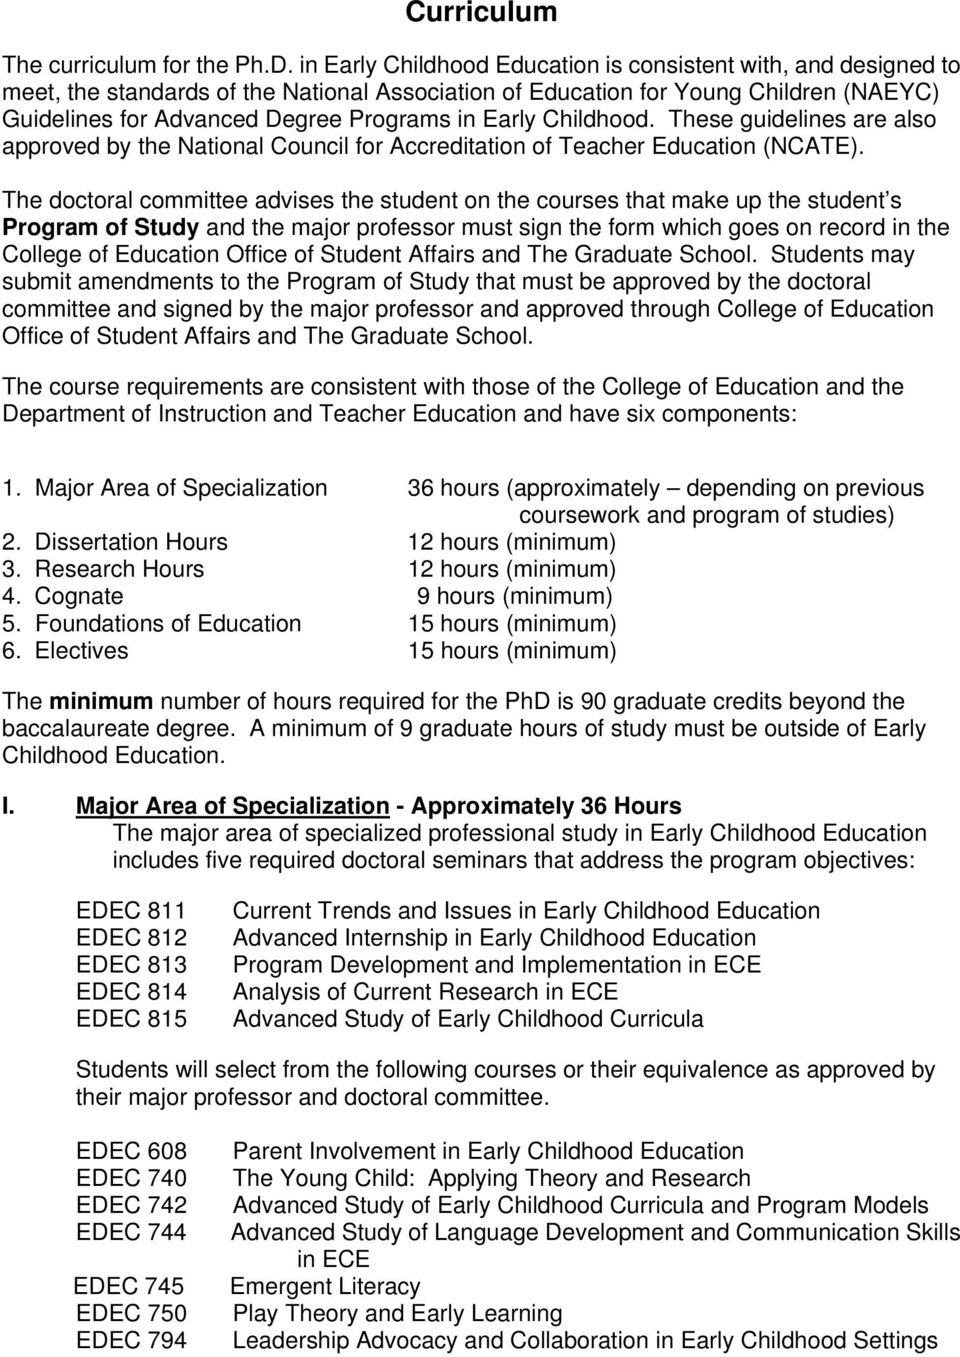 Early Childhood. These guidelines are also approved by the National Council for Accreditation of Teacher Education (NCATE).